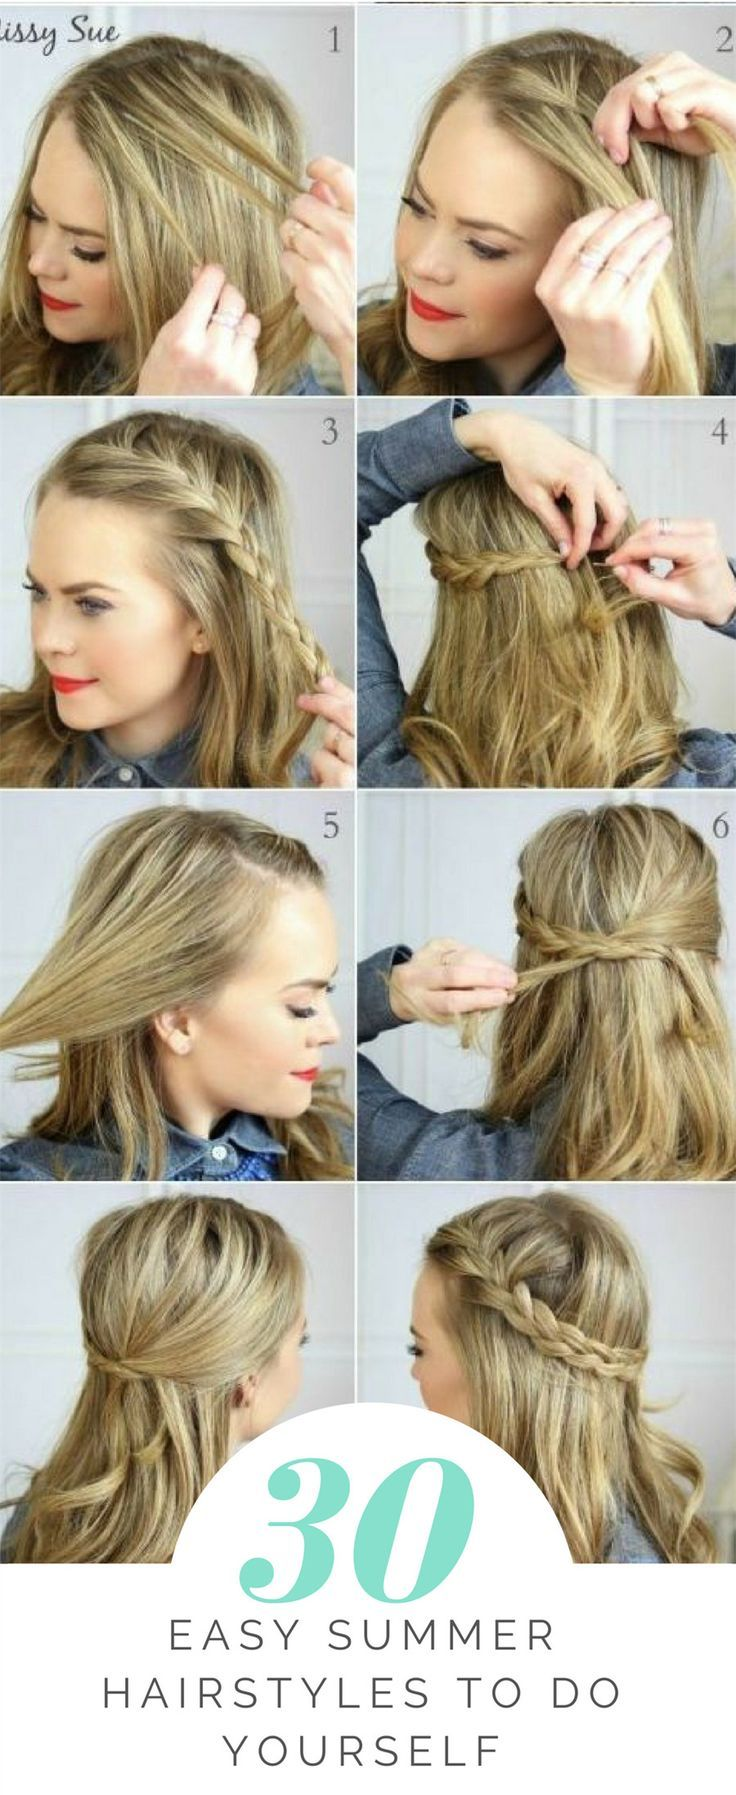 11+ Simple summer hairstyles for DIY  Easy hairstyles for medium